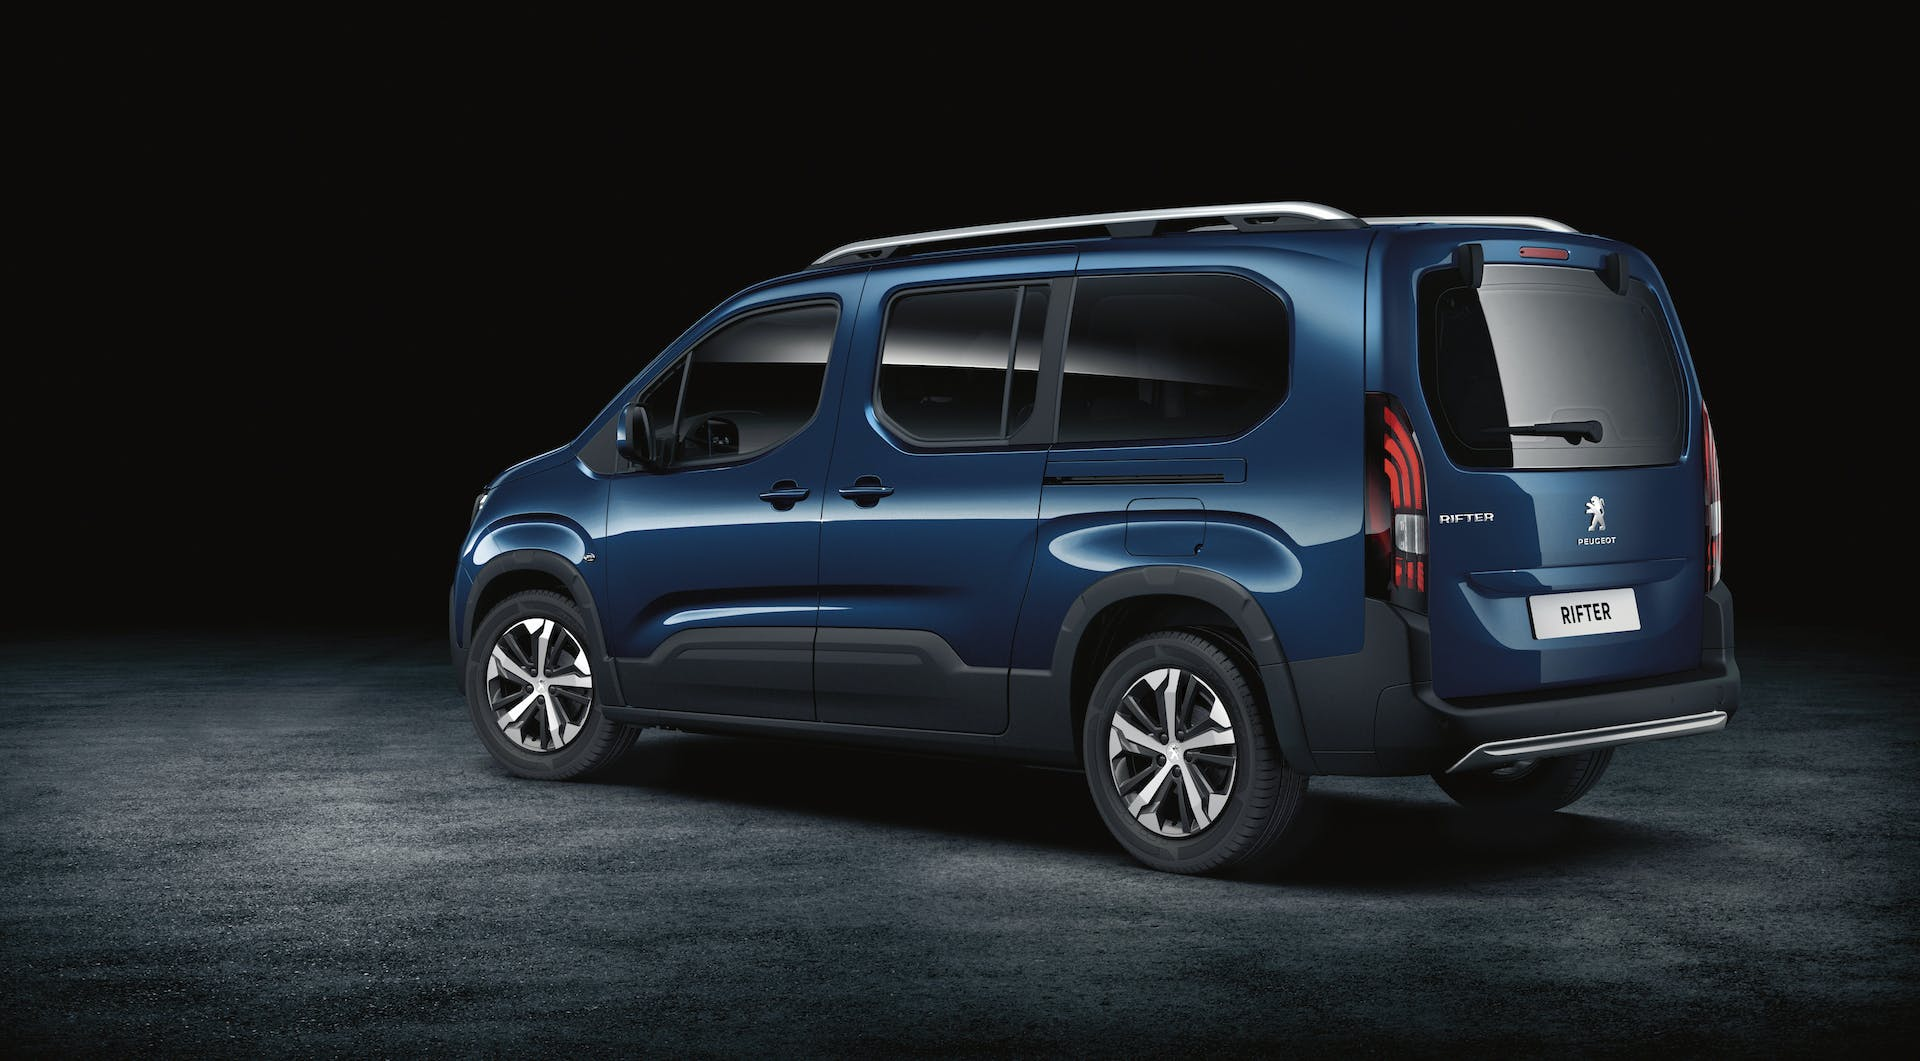 nuovo peugeot rifter lungo